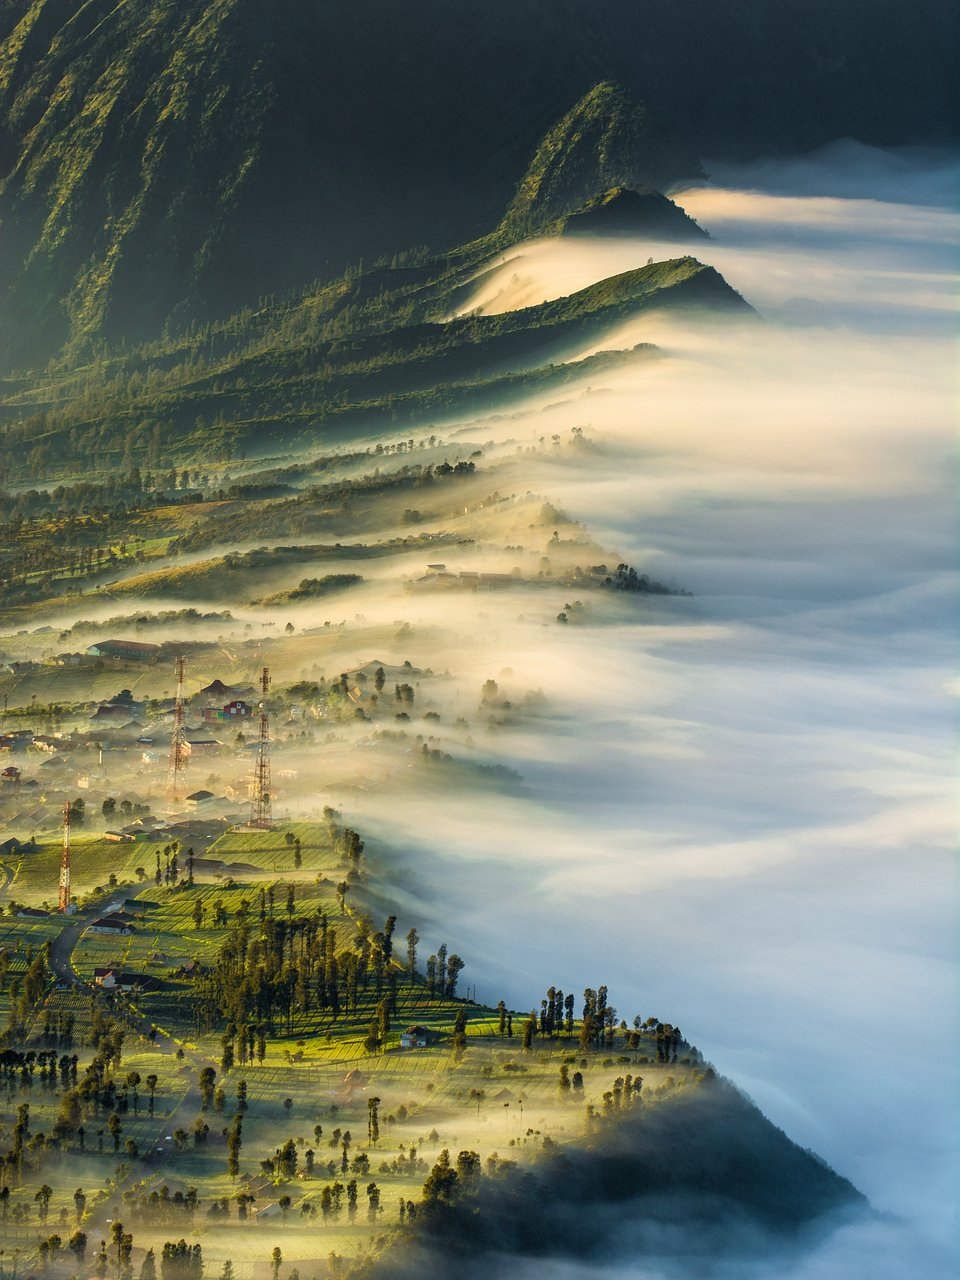 Mist disappears slowly as the sun rises on Mount Bromo, Indonesia (Tian Abdul Hanip/AGORA images)